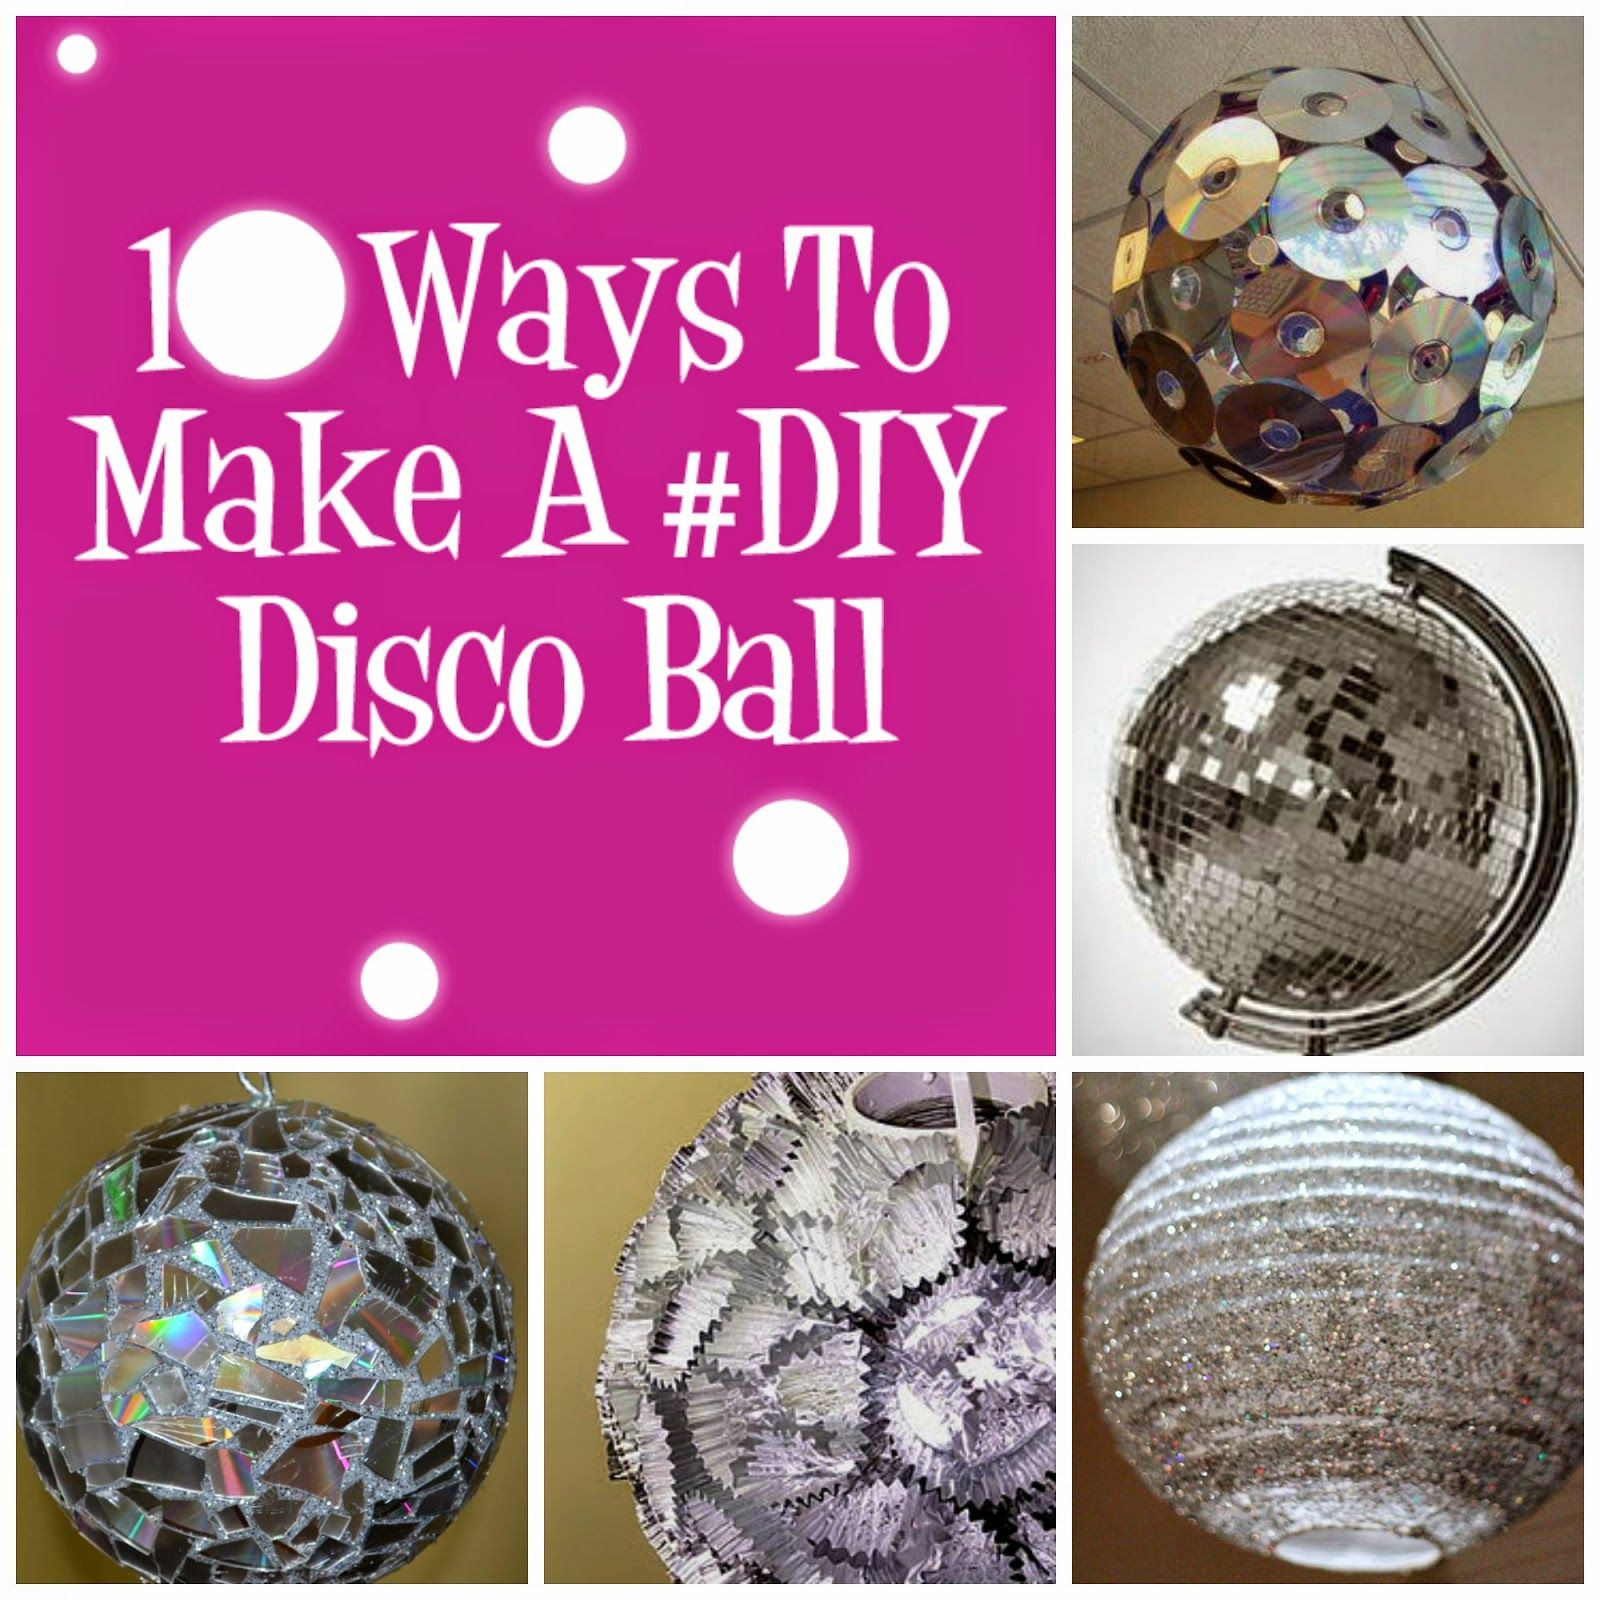 Disco Ball Party Decorations: Disco Ball, Recycled